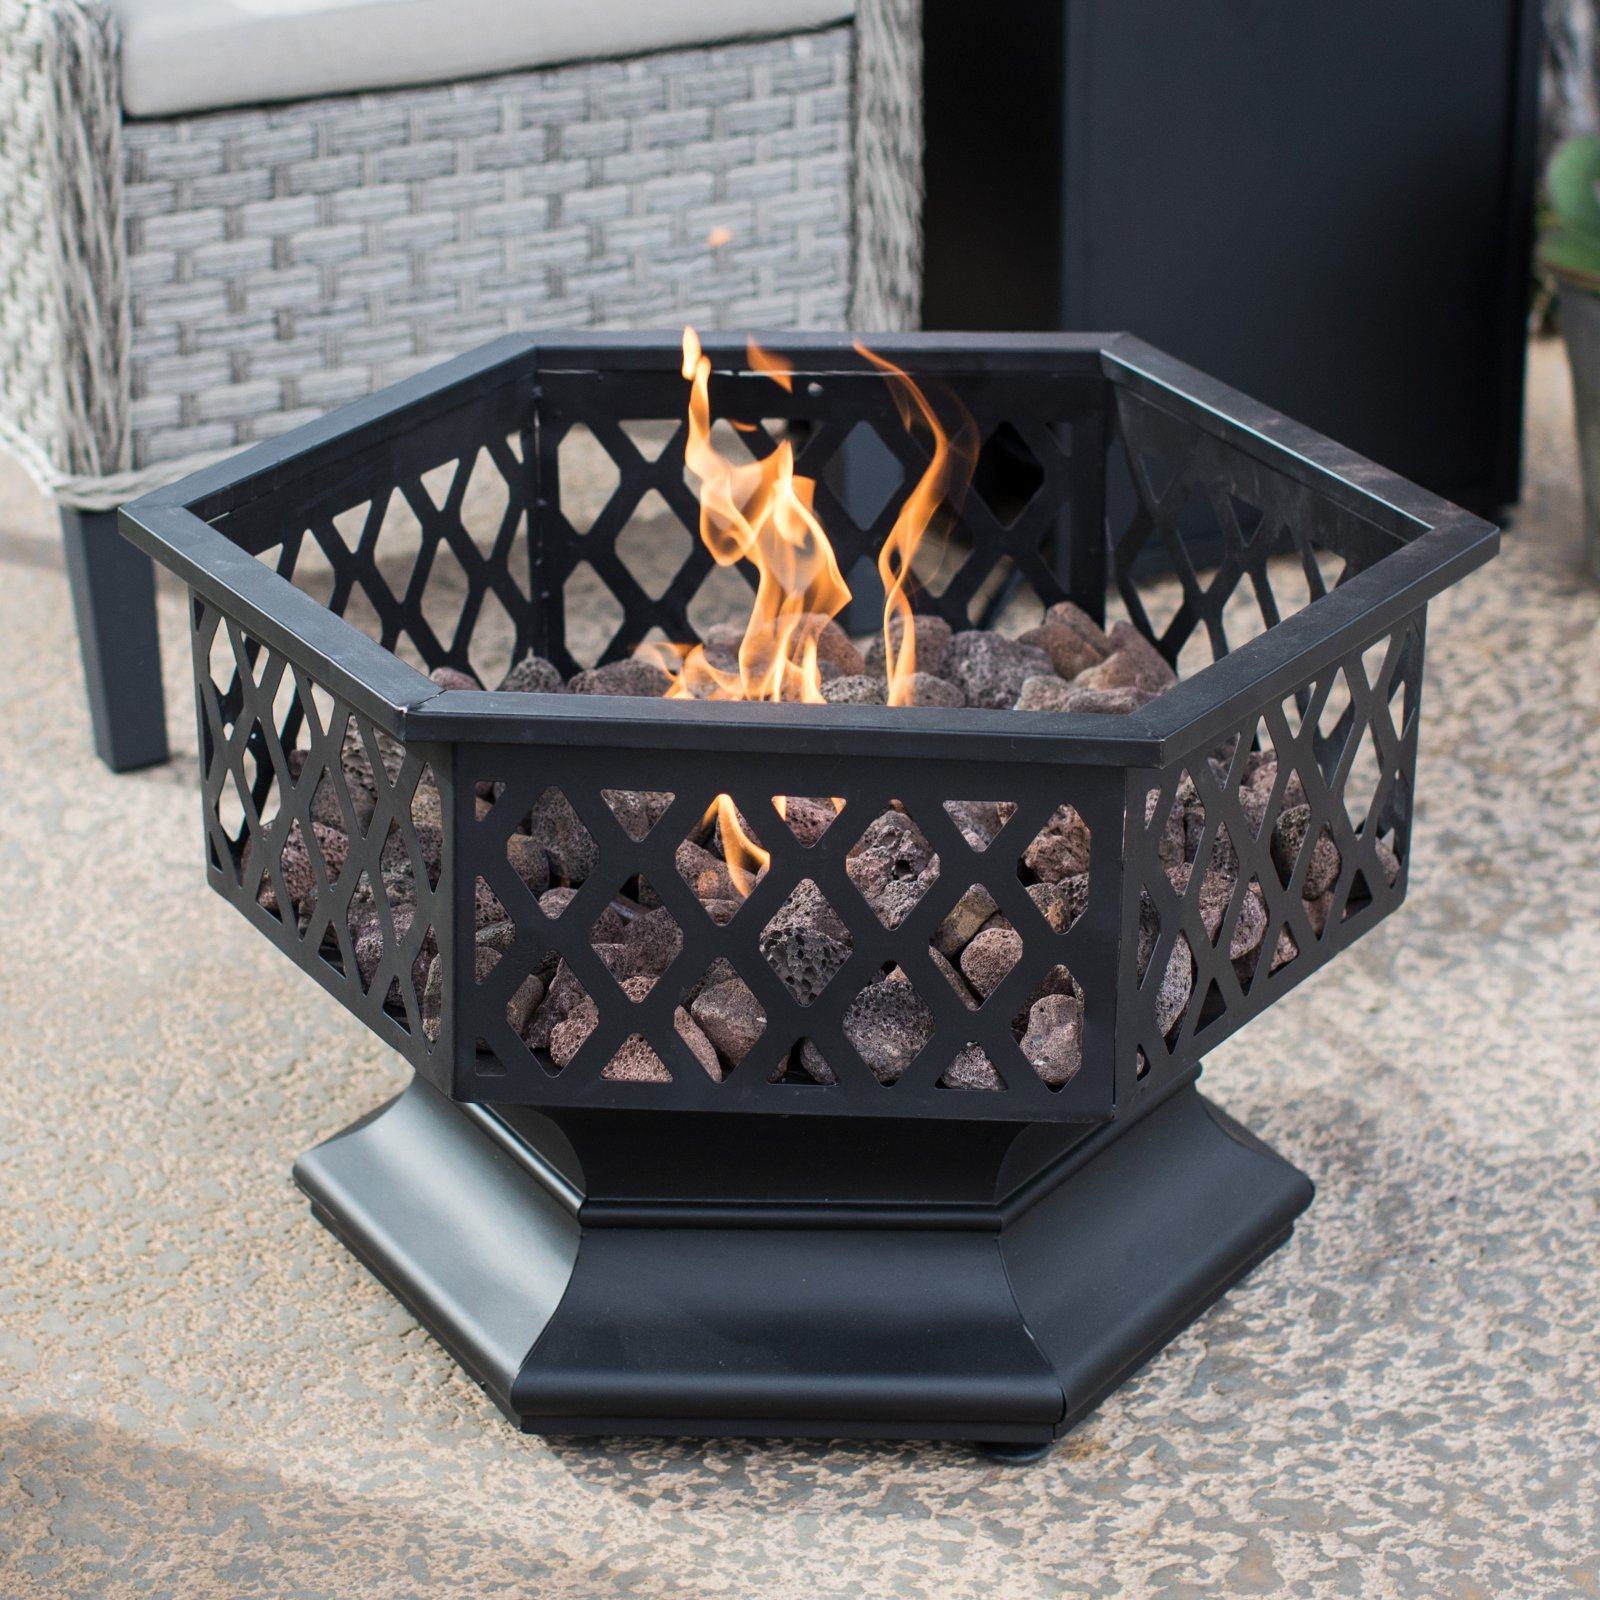 Endless Summer Hexagon Liquid Propane Outdoor Fireplace by Blue Rhino Global Sourcing Inc